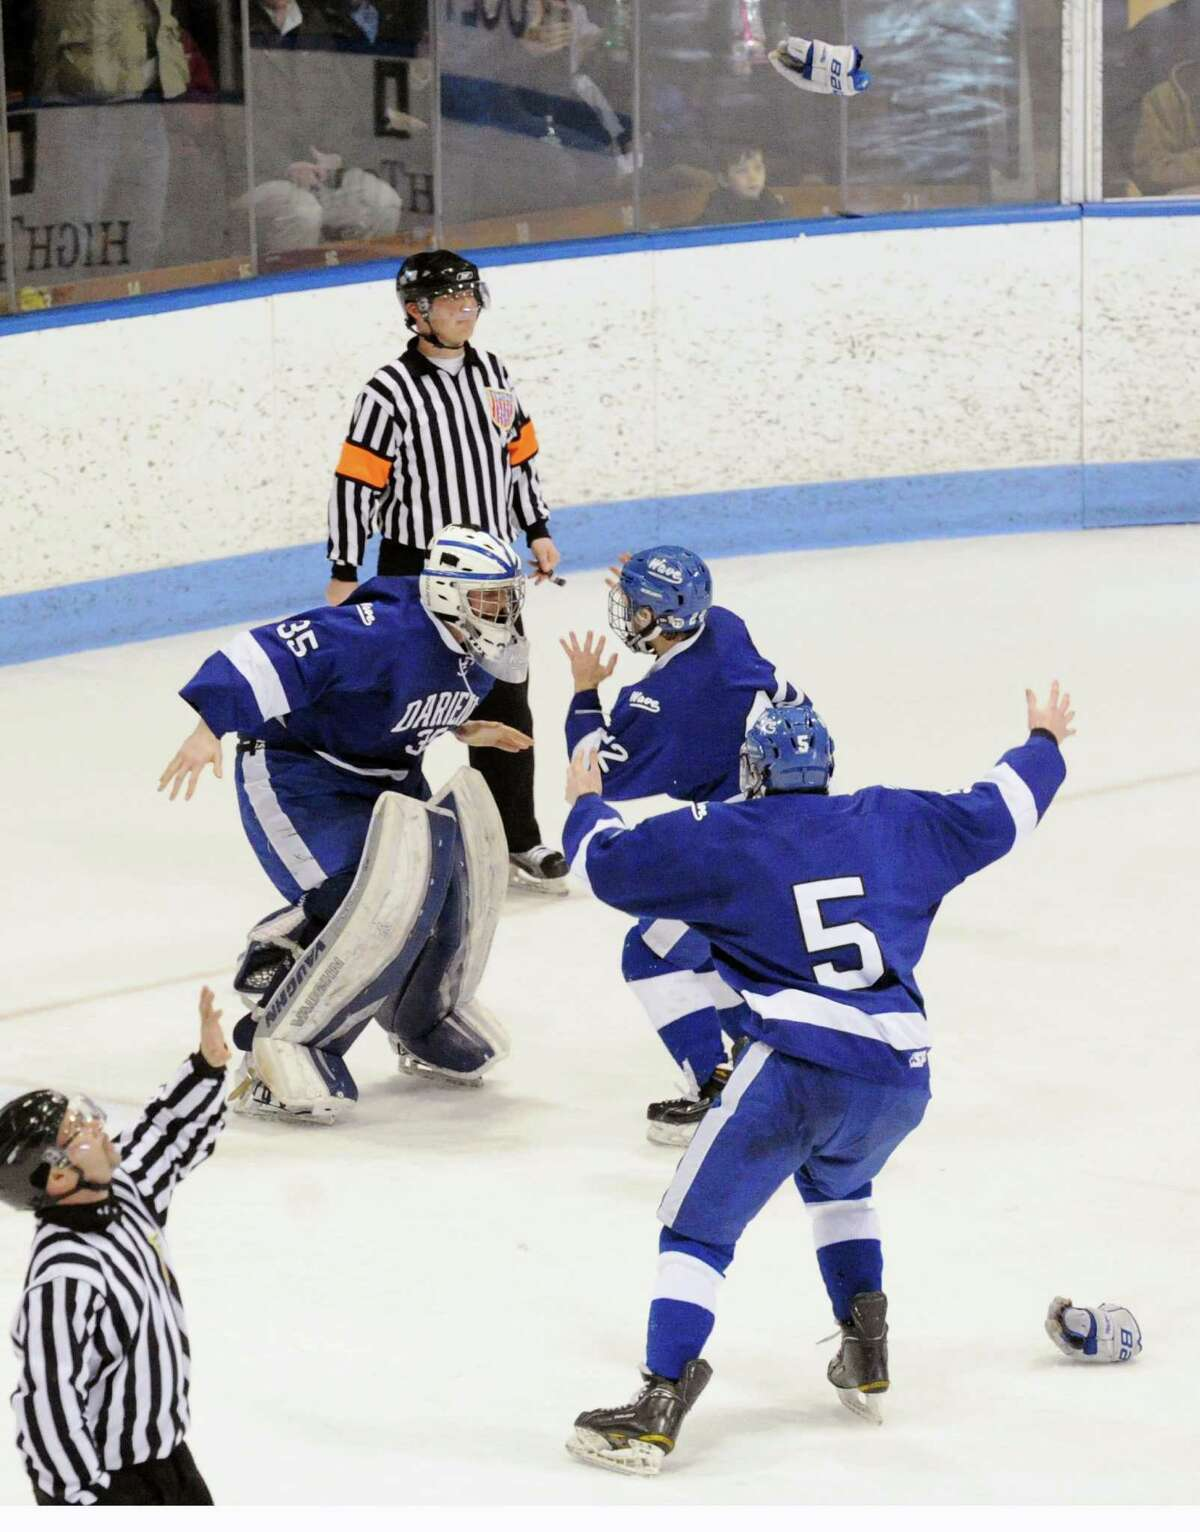 Darien goalie Will Massie, left, celebrates with teammates including Jake Kirby (#5), right, at the conclusion of the CIAC Division I boys state hockey championship game between Greenwich High School and Darien High School at Ingalls Rink in New Haven, Conn., Saturday March 21, 2015. Darien took the title with a 1-0 victory over Greenwich on a Jack Pardue goal in the second period.